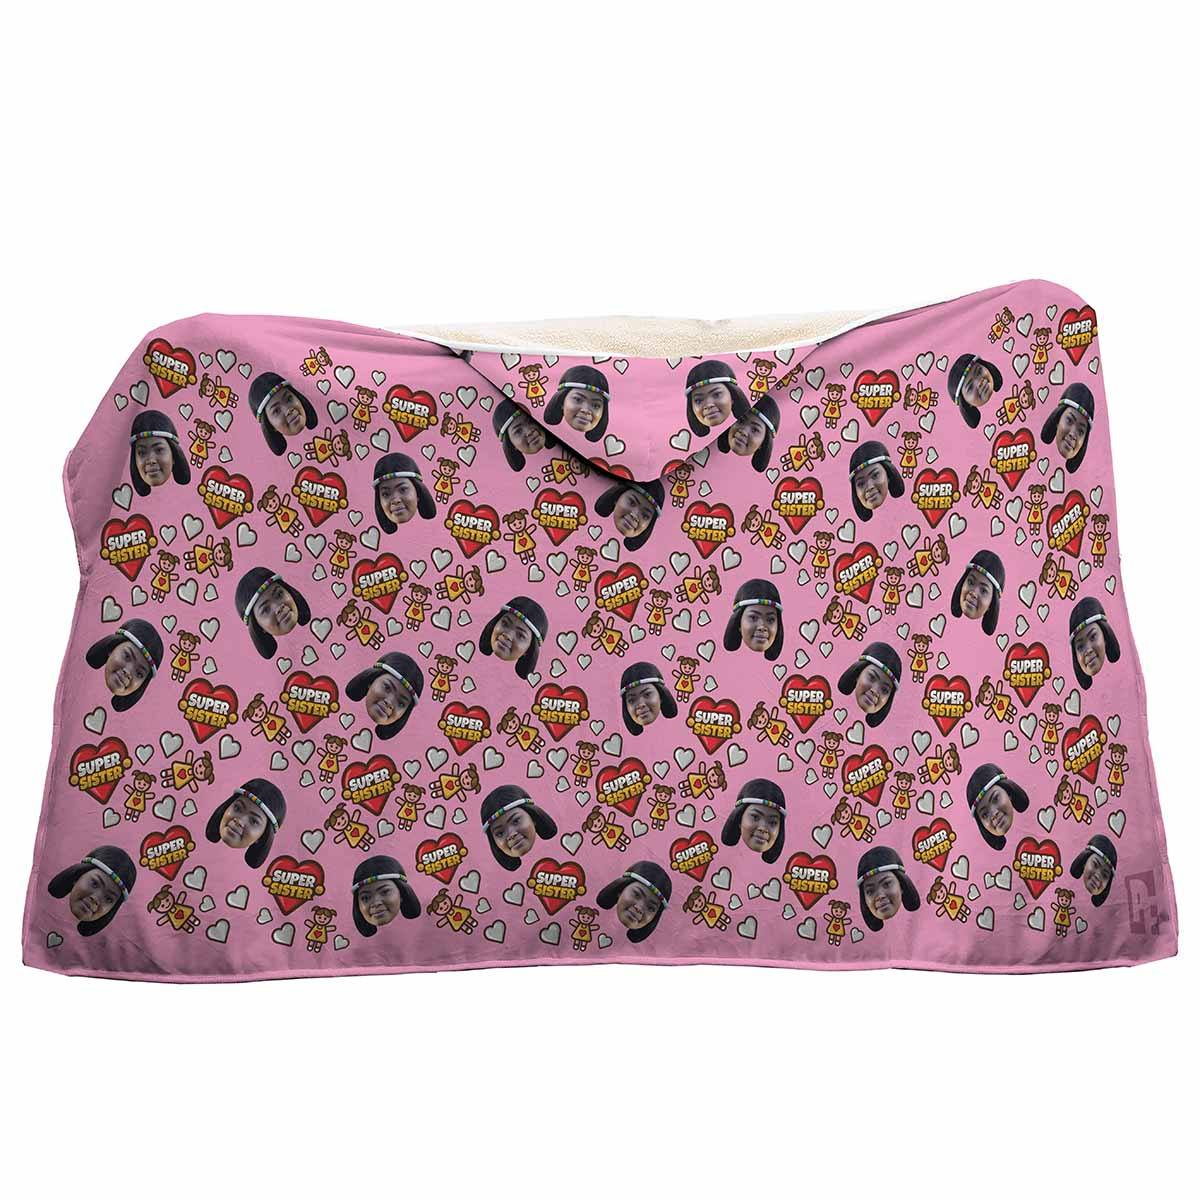 pink Super Sister hooded blanket personalized with photo of face printed on it